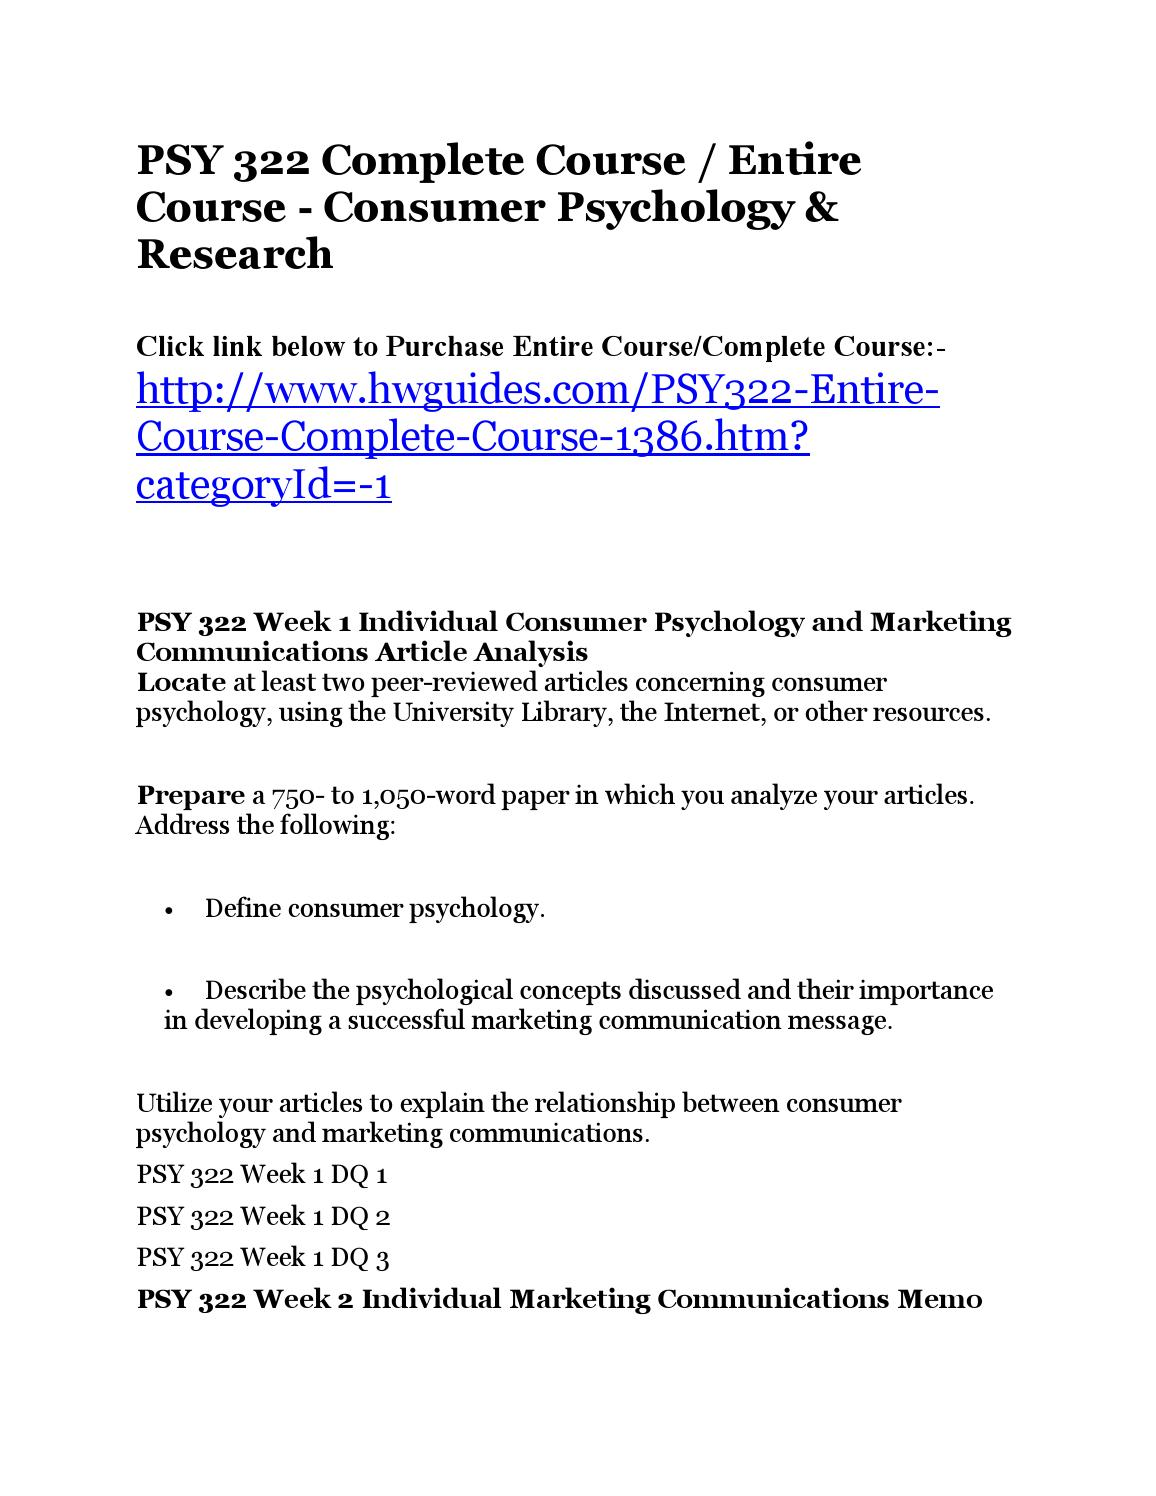 psy 322 consumer psychology and research Consumer behavior involves the study of how people--either individually or in groups--acquire, use, experience, discard, and make decisions about goods, serivces, or even lifestyle practices such as socially responsible and healthy eating.